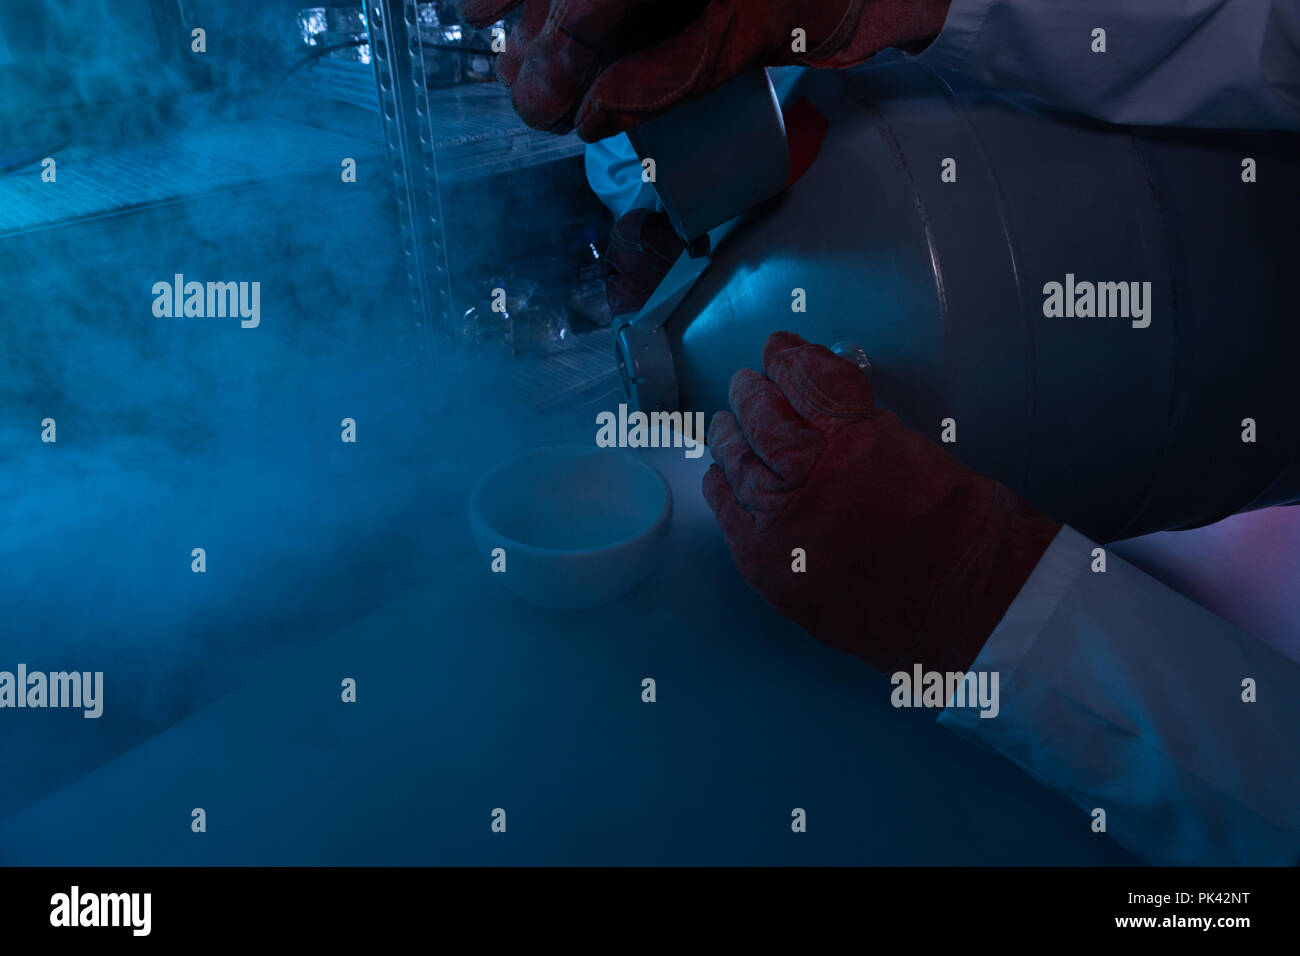 Male scientist pouring liquid in a bowl - Stock Image